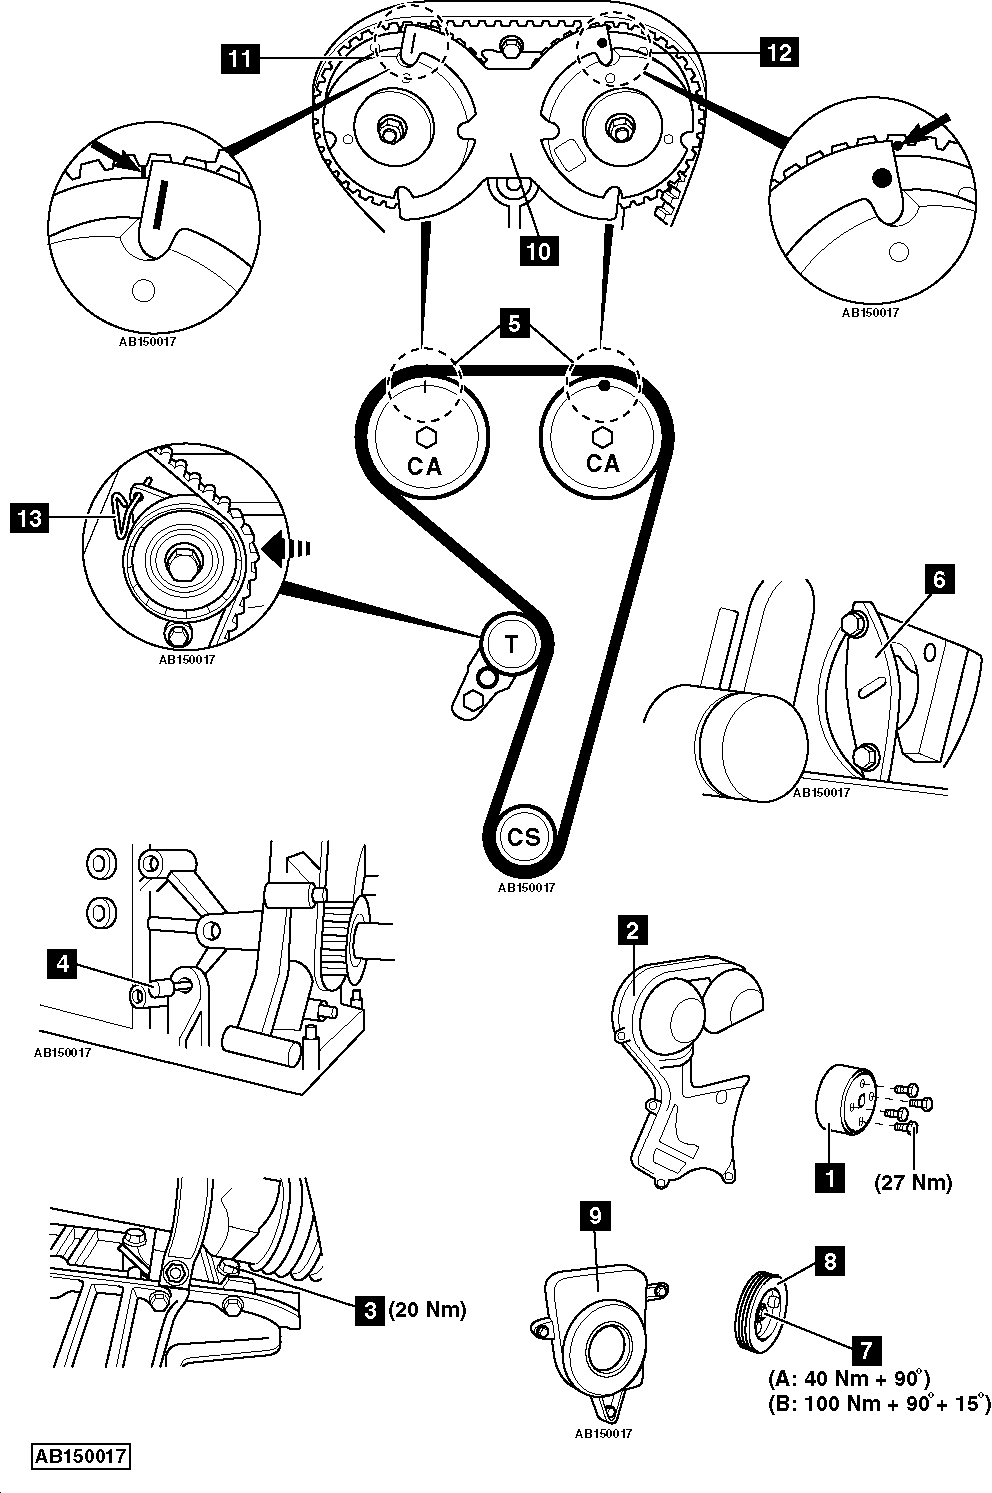 Serpentine Belt Diagram For 2002 Ford Taurus: Honda Accord Wiring Diagram Ford Focus Radio At Galaxydownloads.co